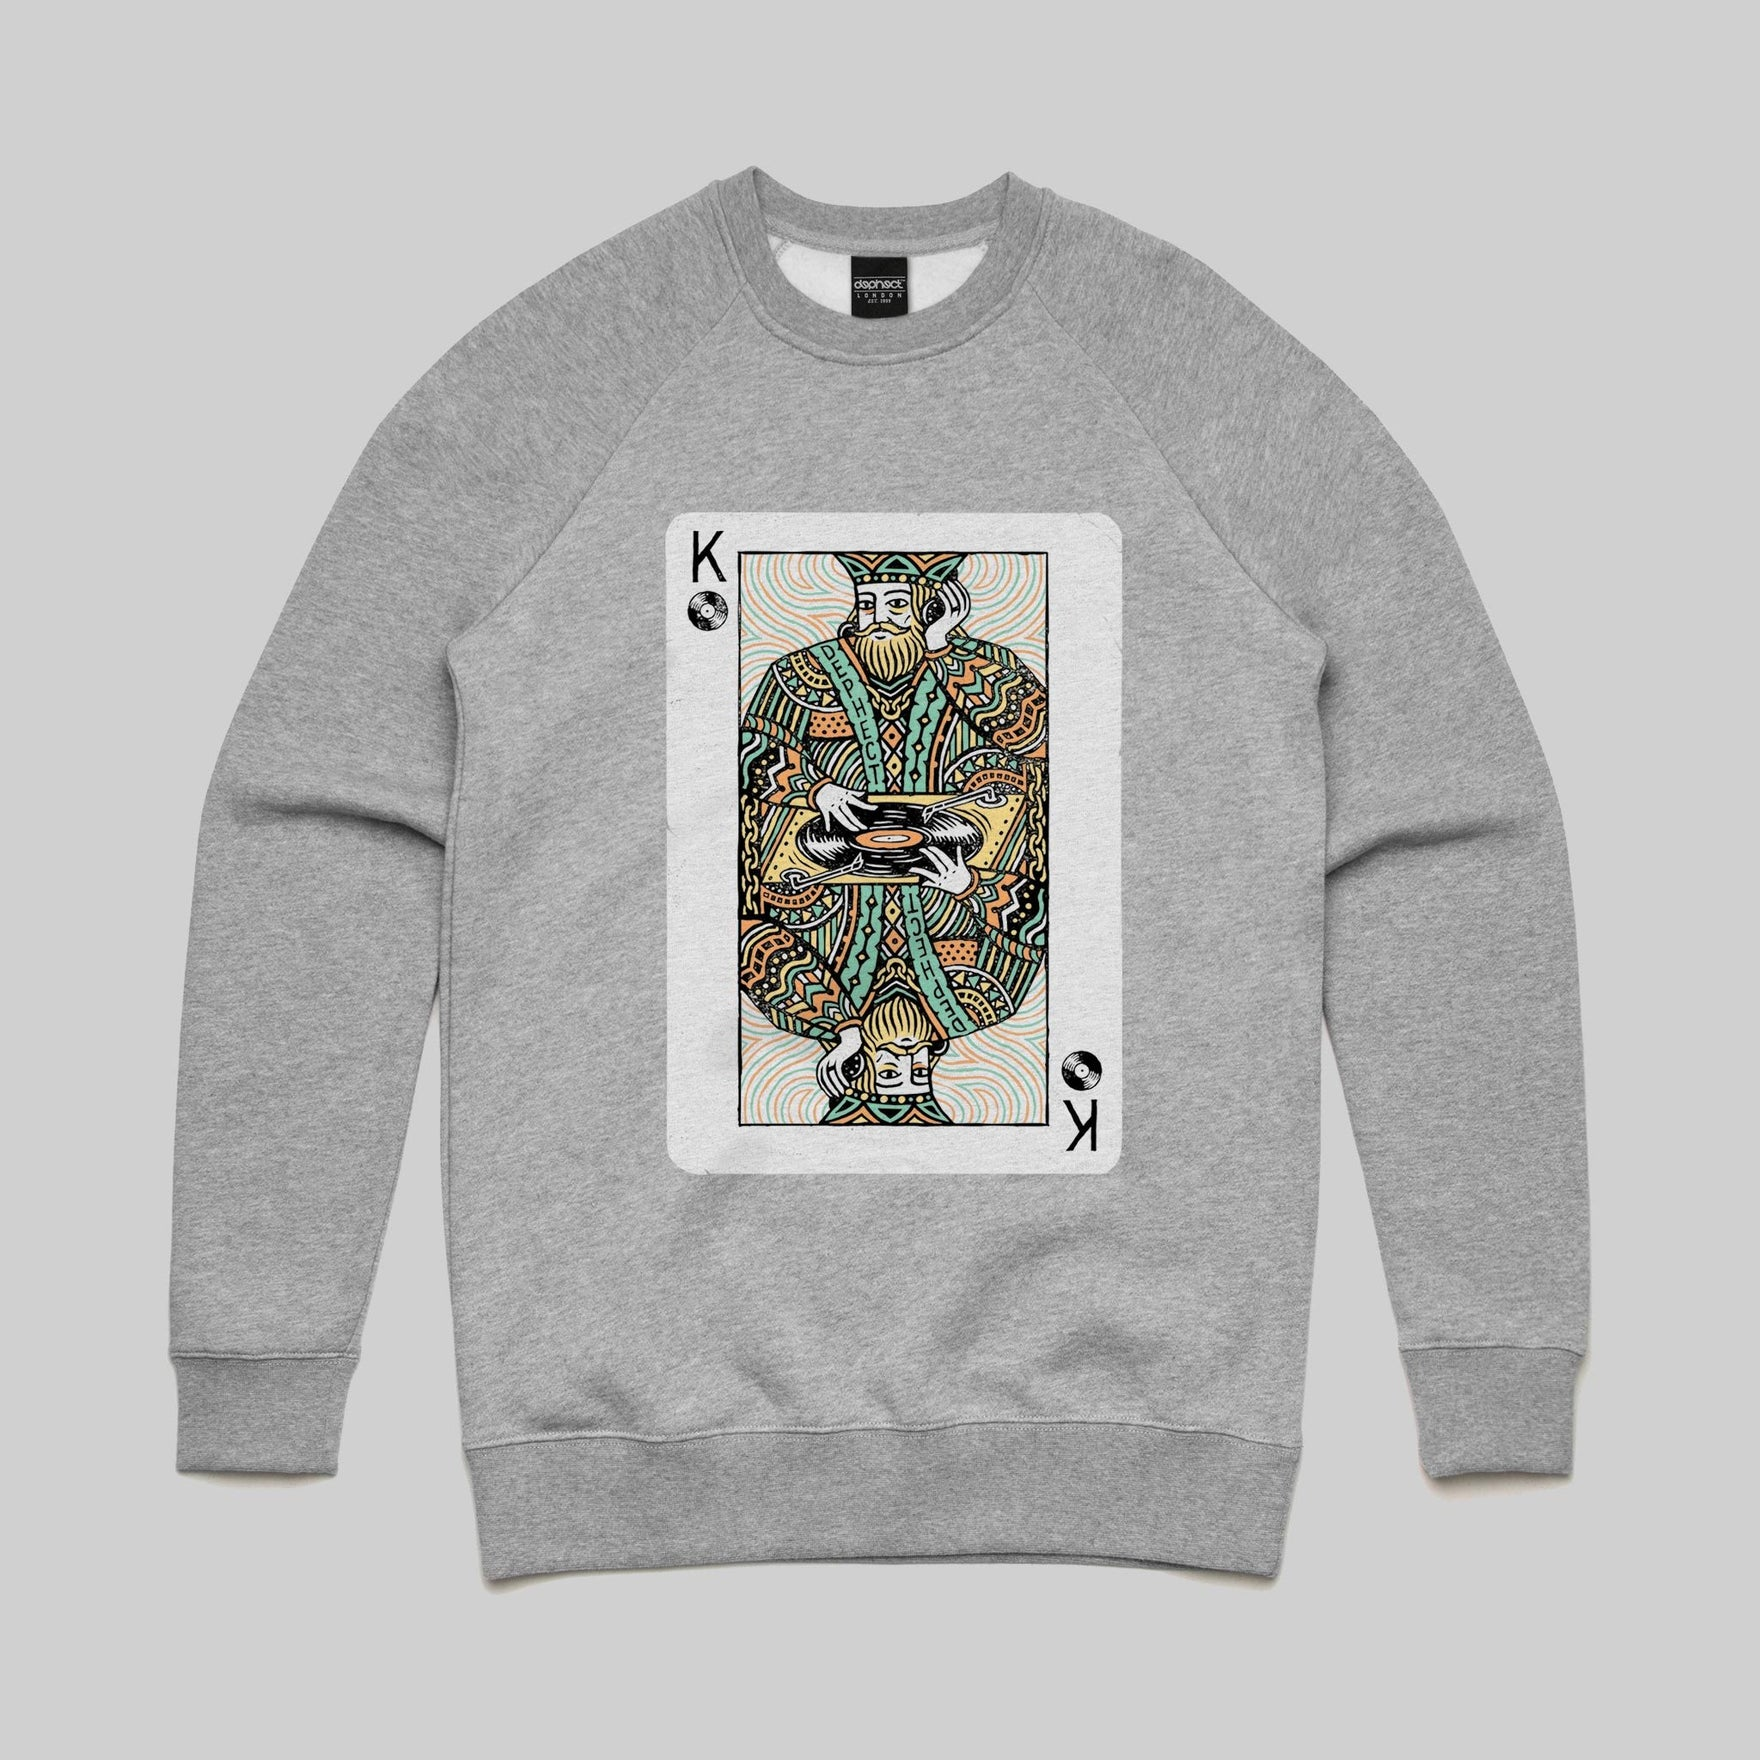 Turntable King Sweatshirt / Athletic Heather / by Pedro Oyarbide